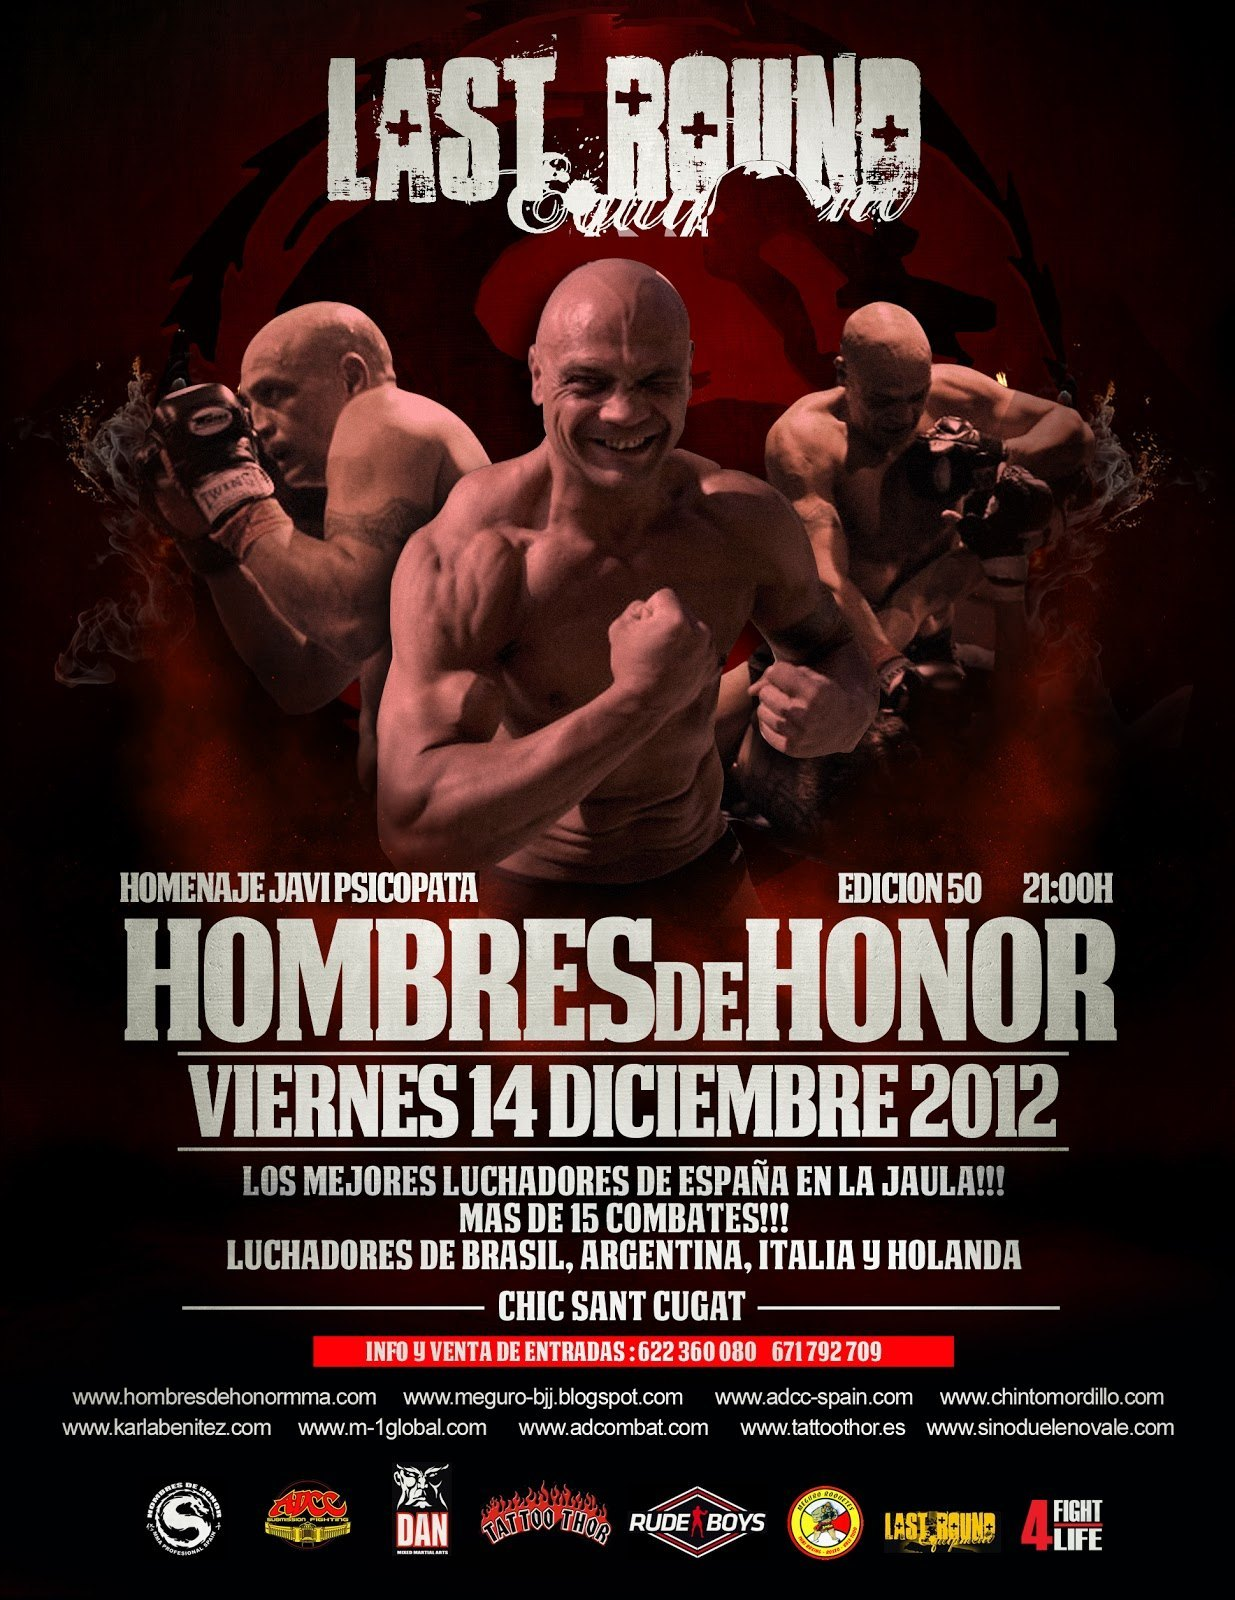 Hombres de honor final latino dating. Dating for one night.